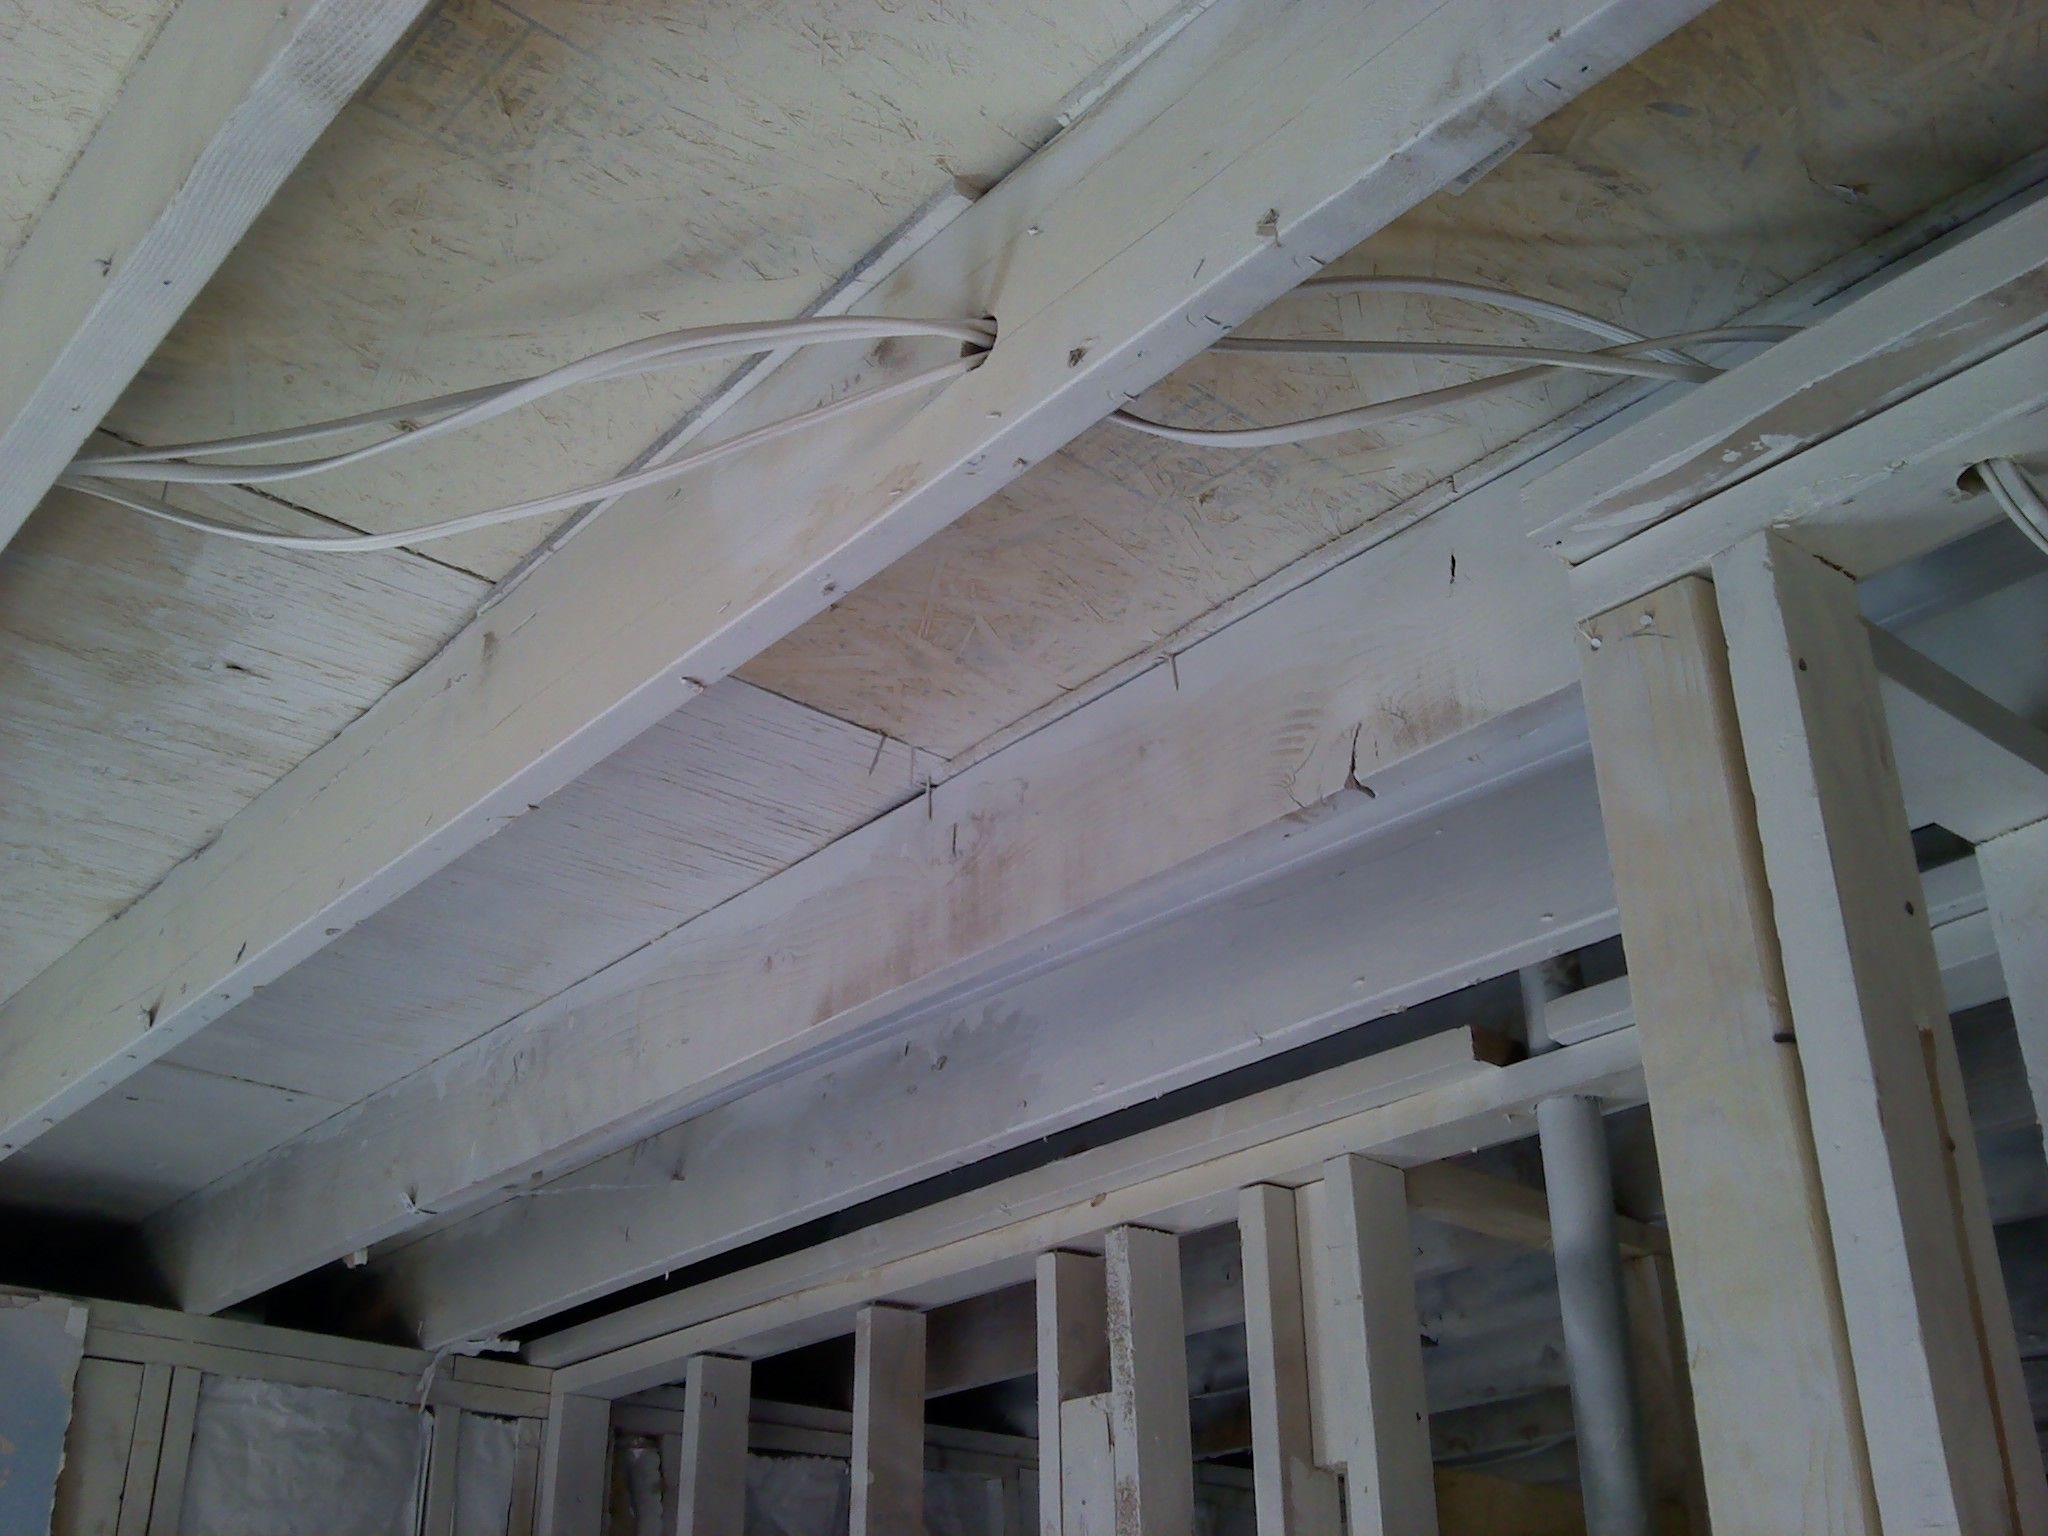 Paseo Full Renovation With Mold Remediation Yuk Mold Remover Mold Remediation Molding